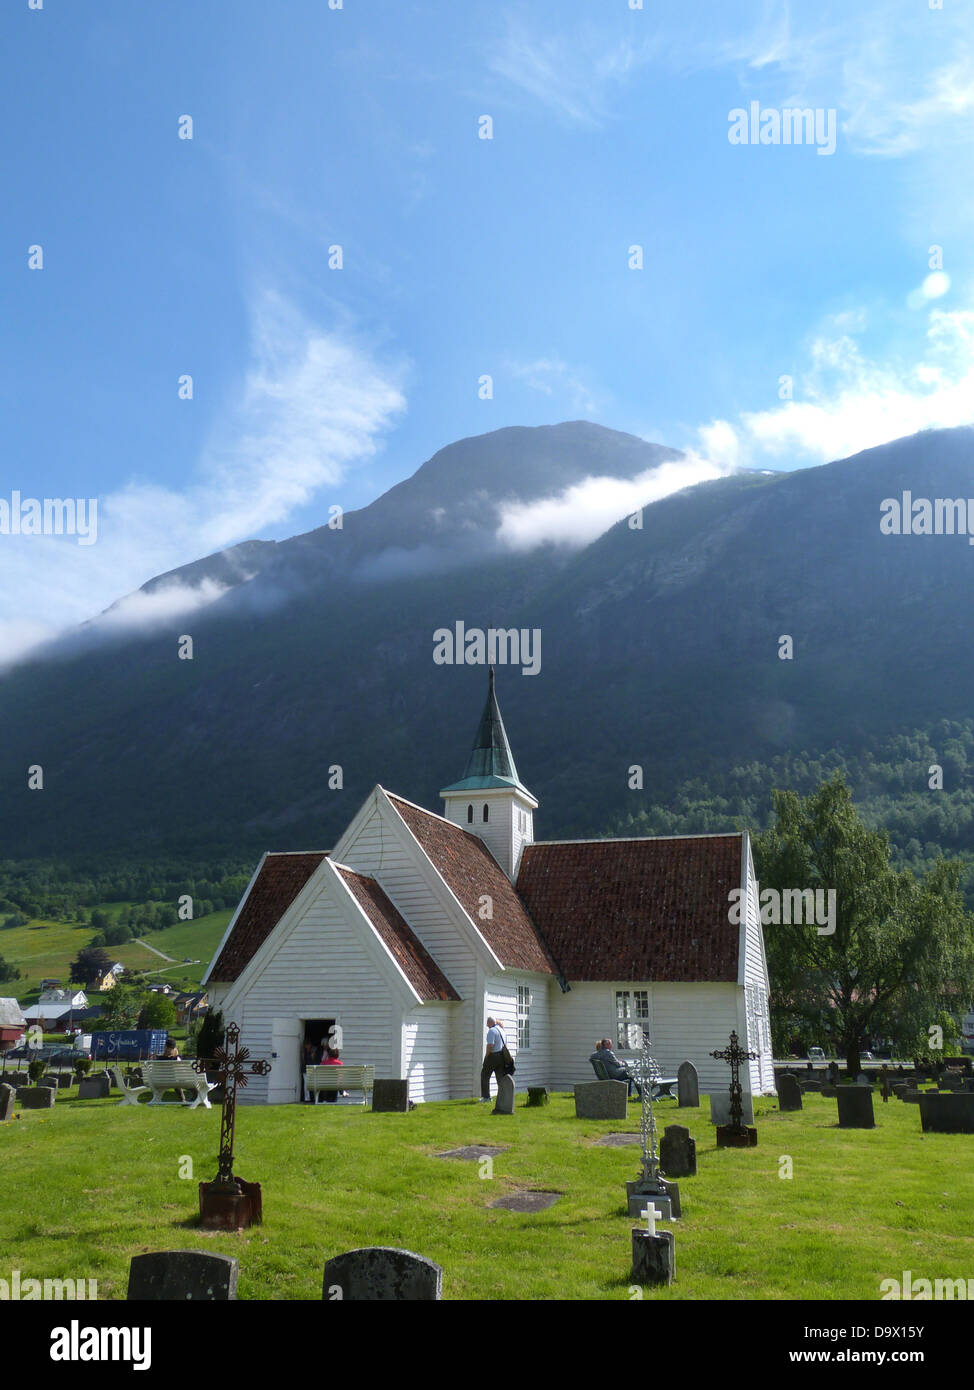 The old church in Olden, Norway. - Stock Image